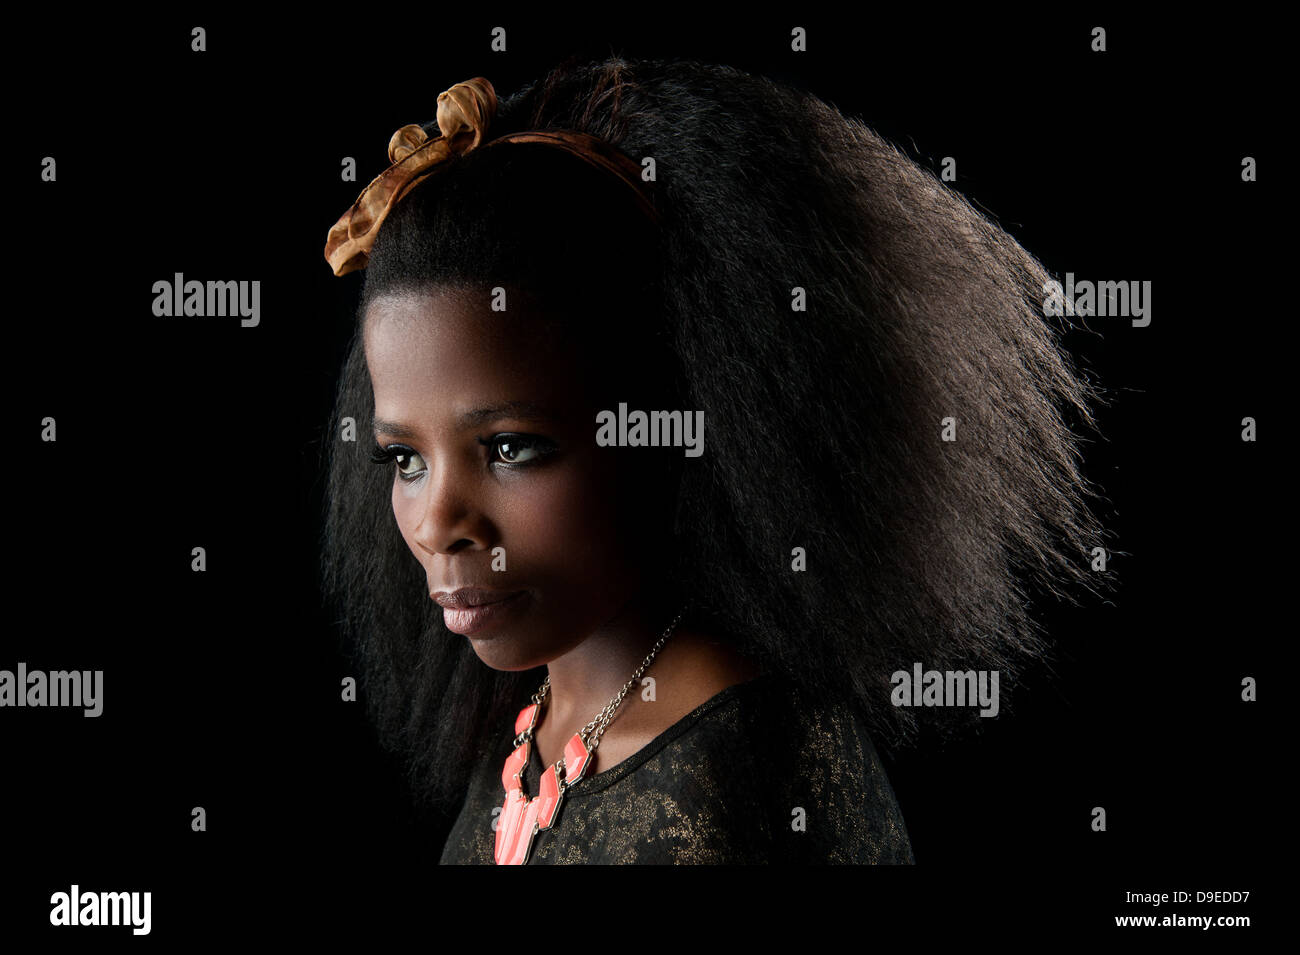 Young African lady with beautiful afro hair, a low key background studio shot. Dramatic facial expression. Soft - Stock Image